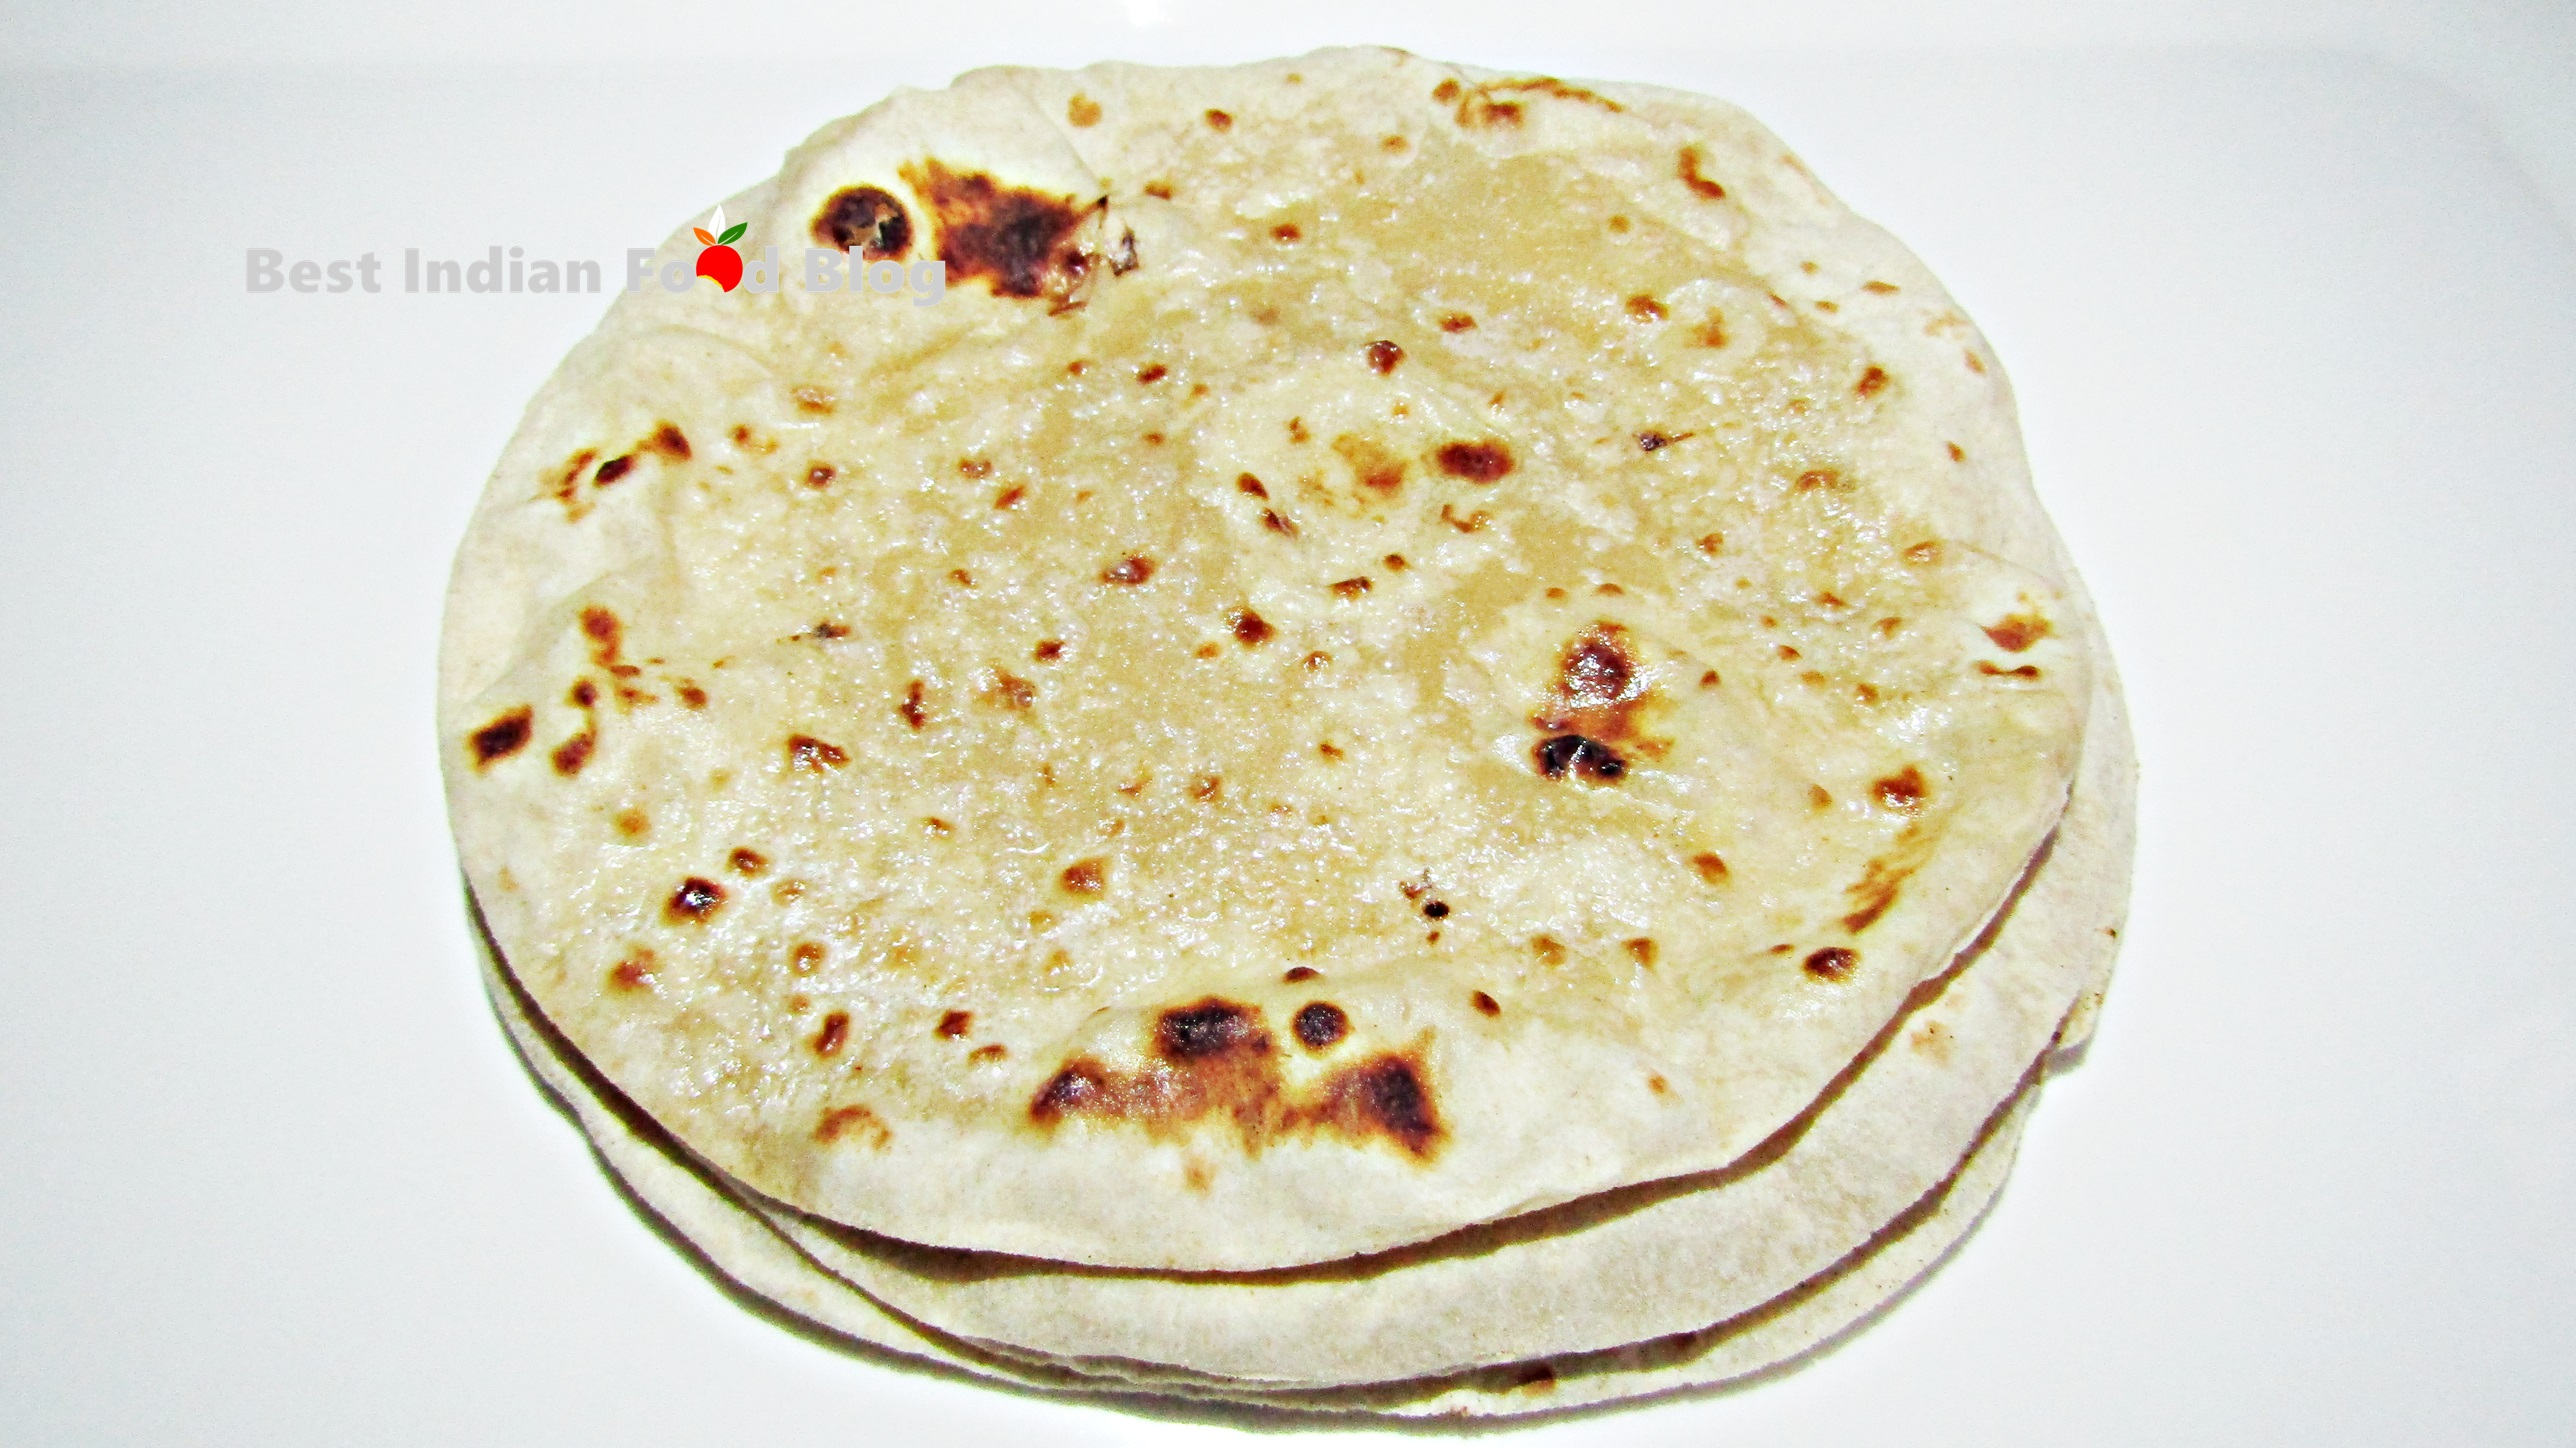 Rotli from Daman and Diu, India | Best Indian Food Blog | Wheat recipe